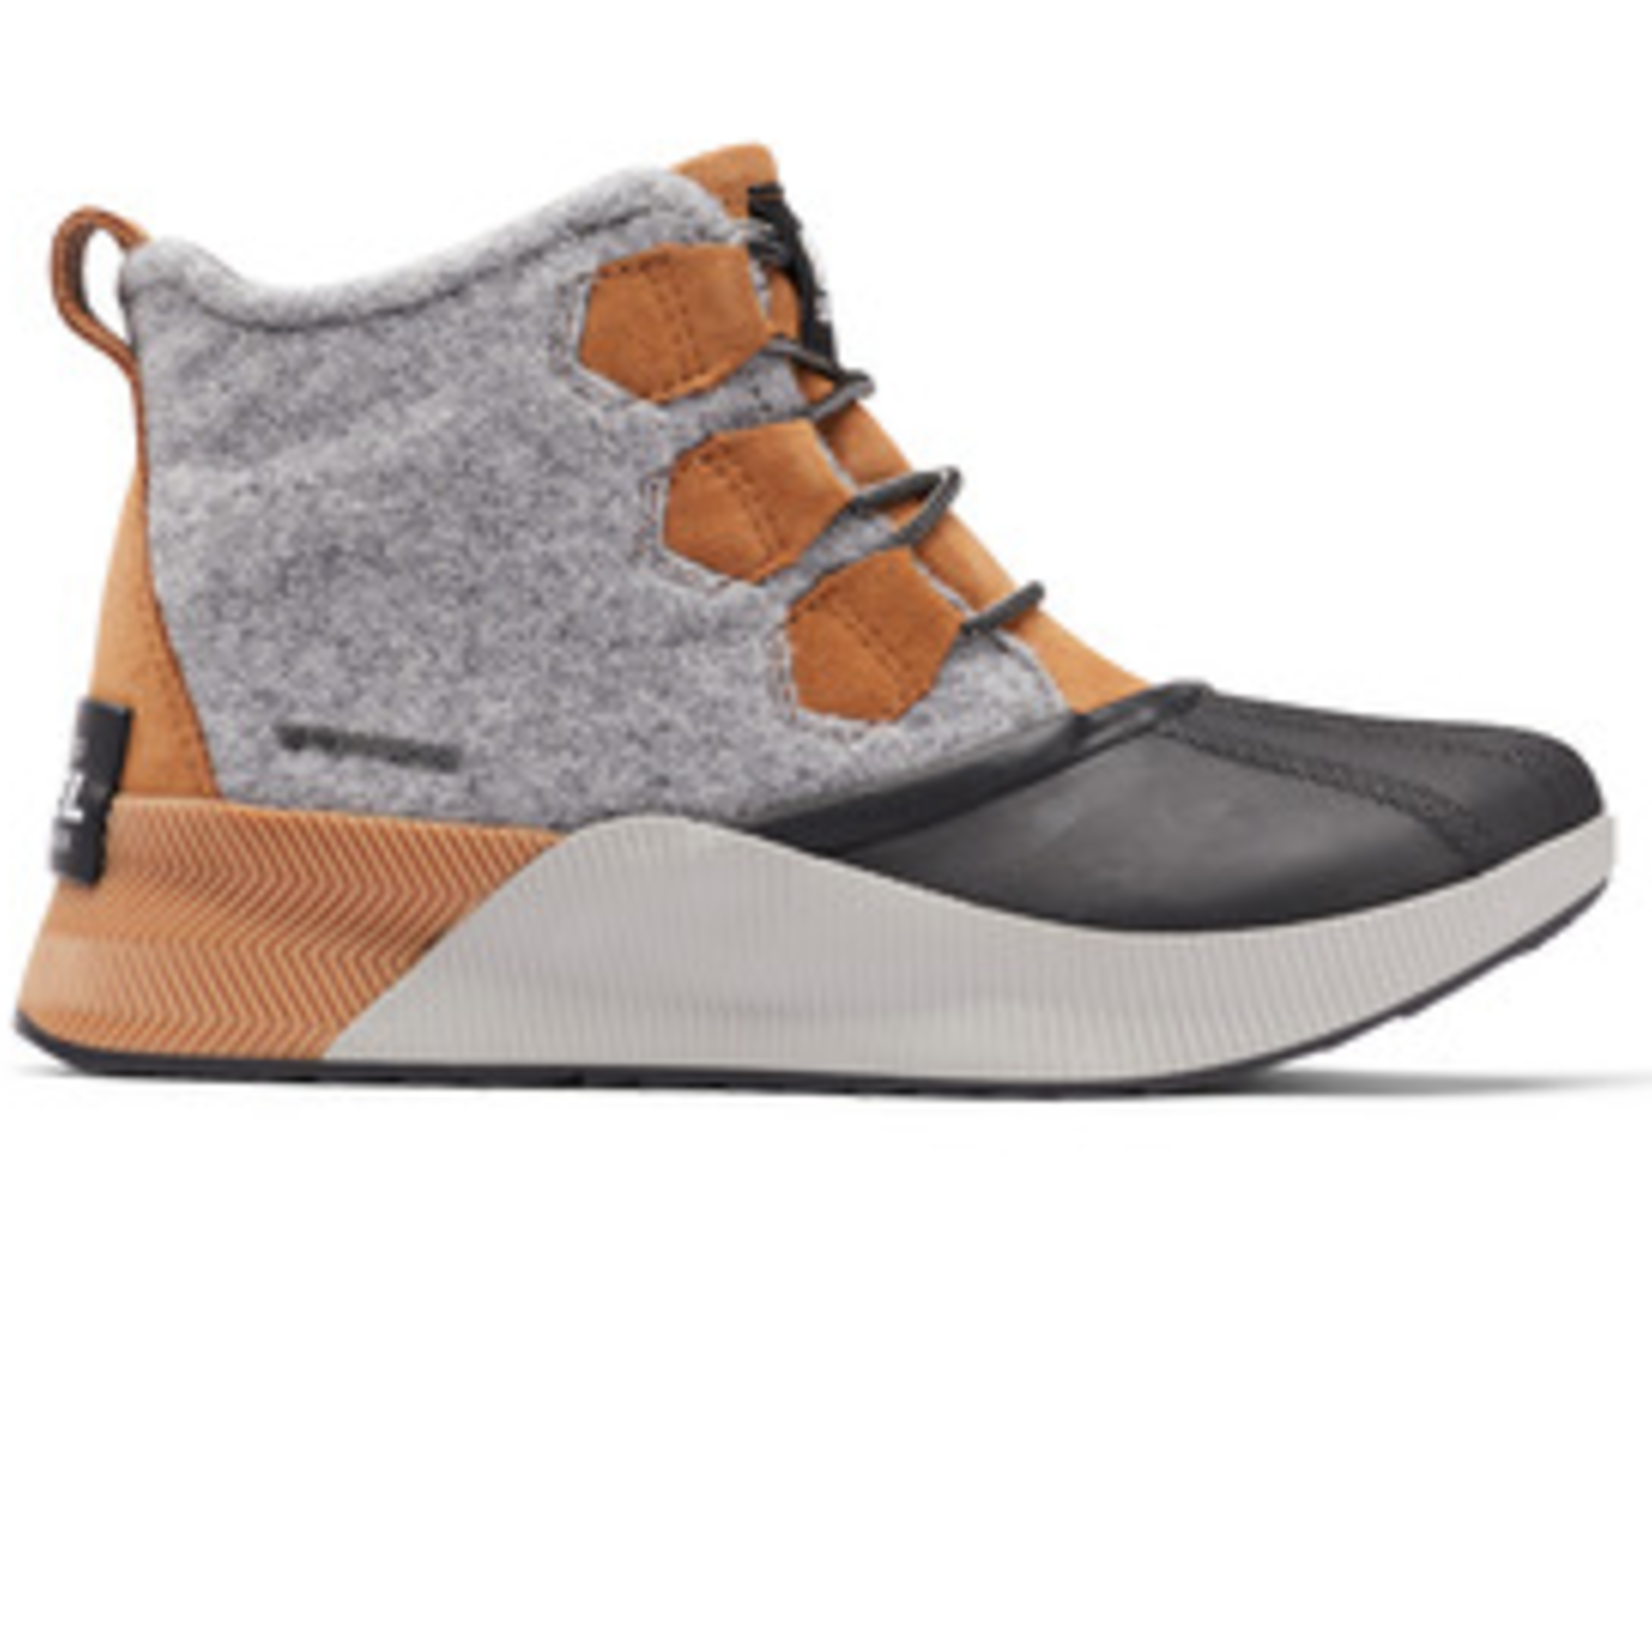 Sorel Sorel W's Out n About III Classic WP - P-139814